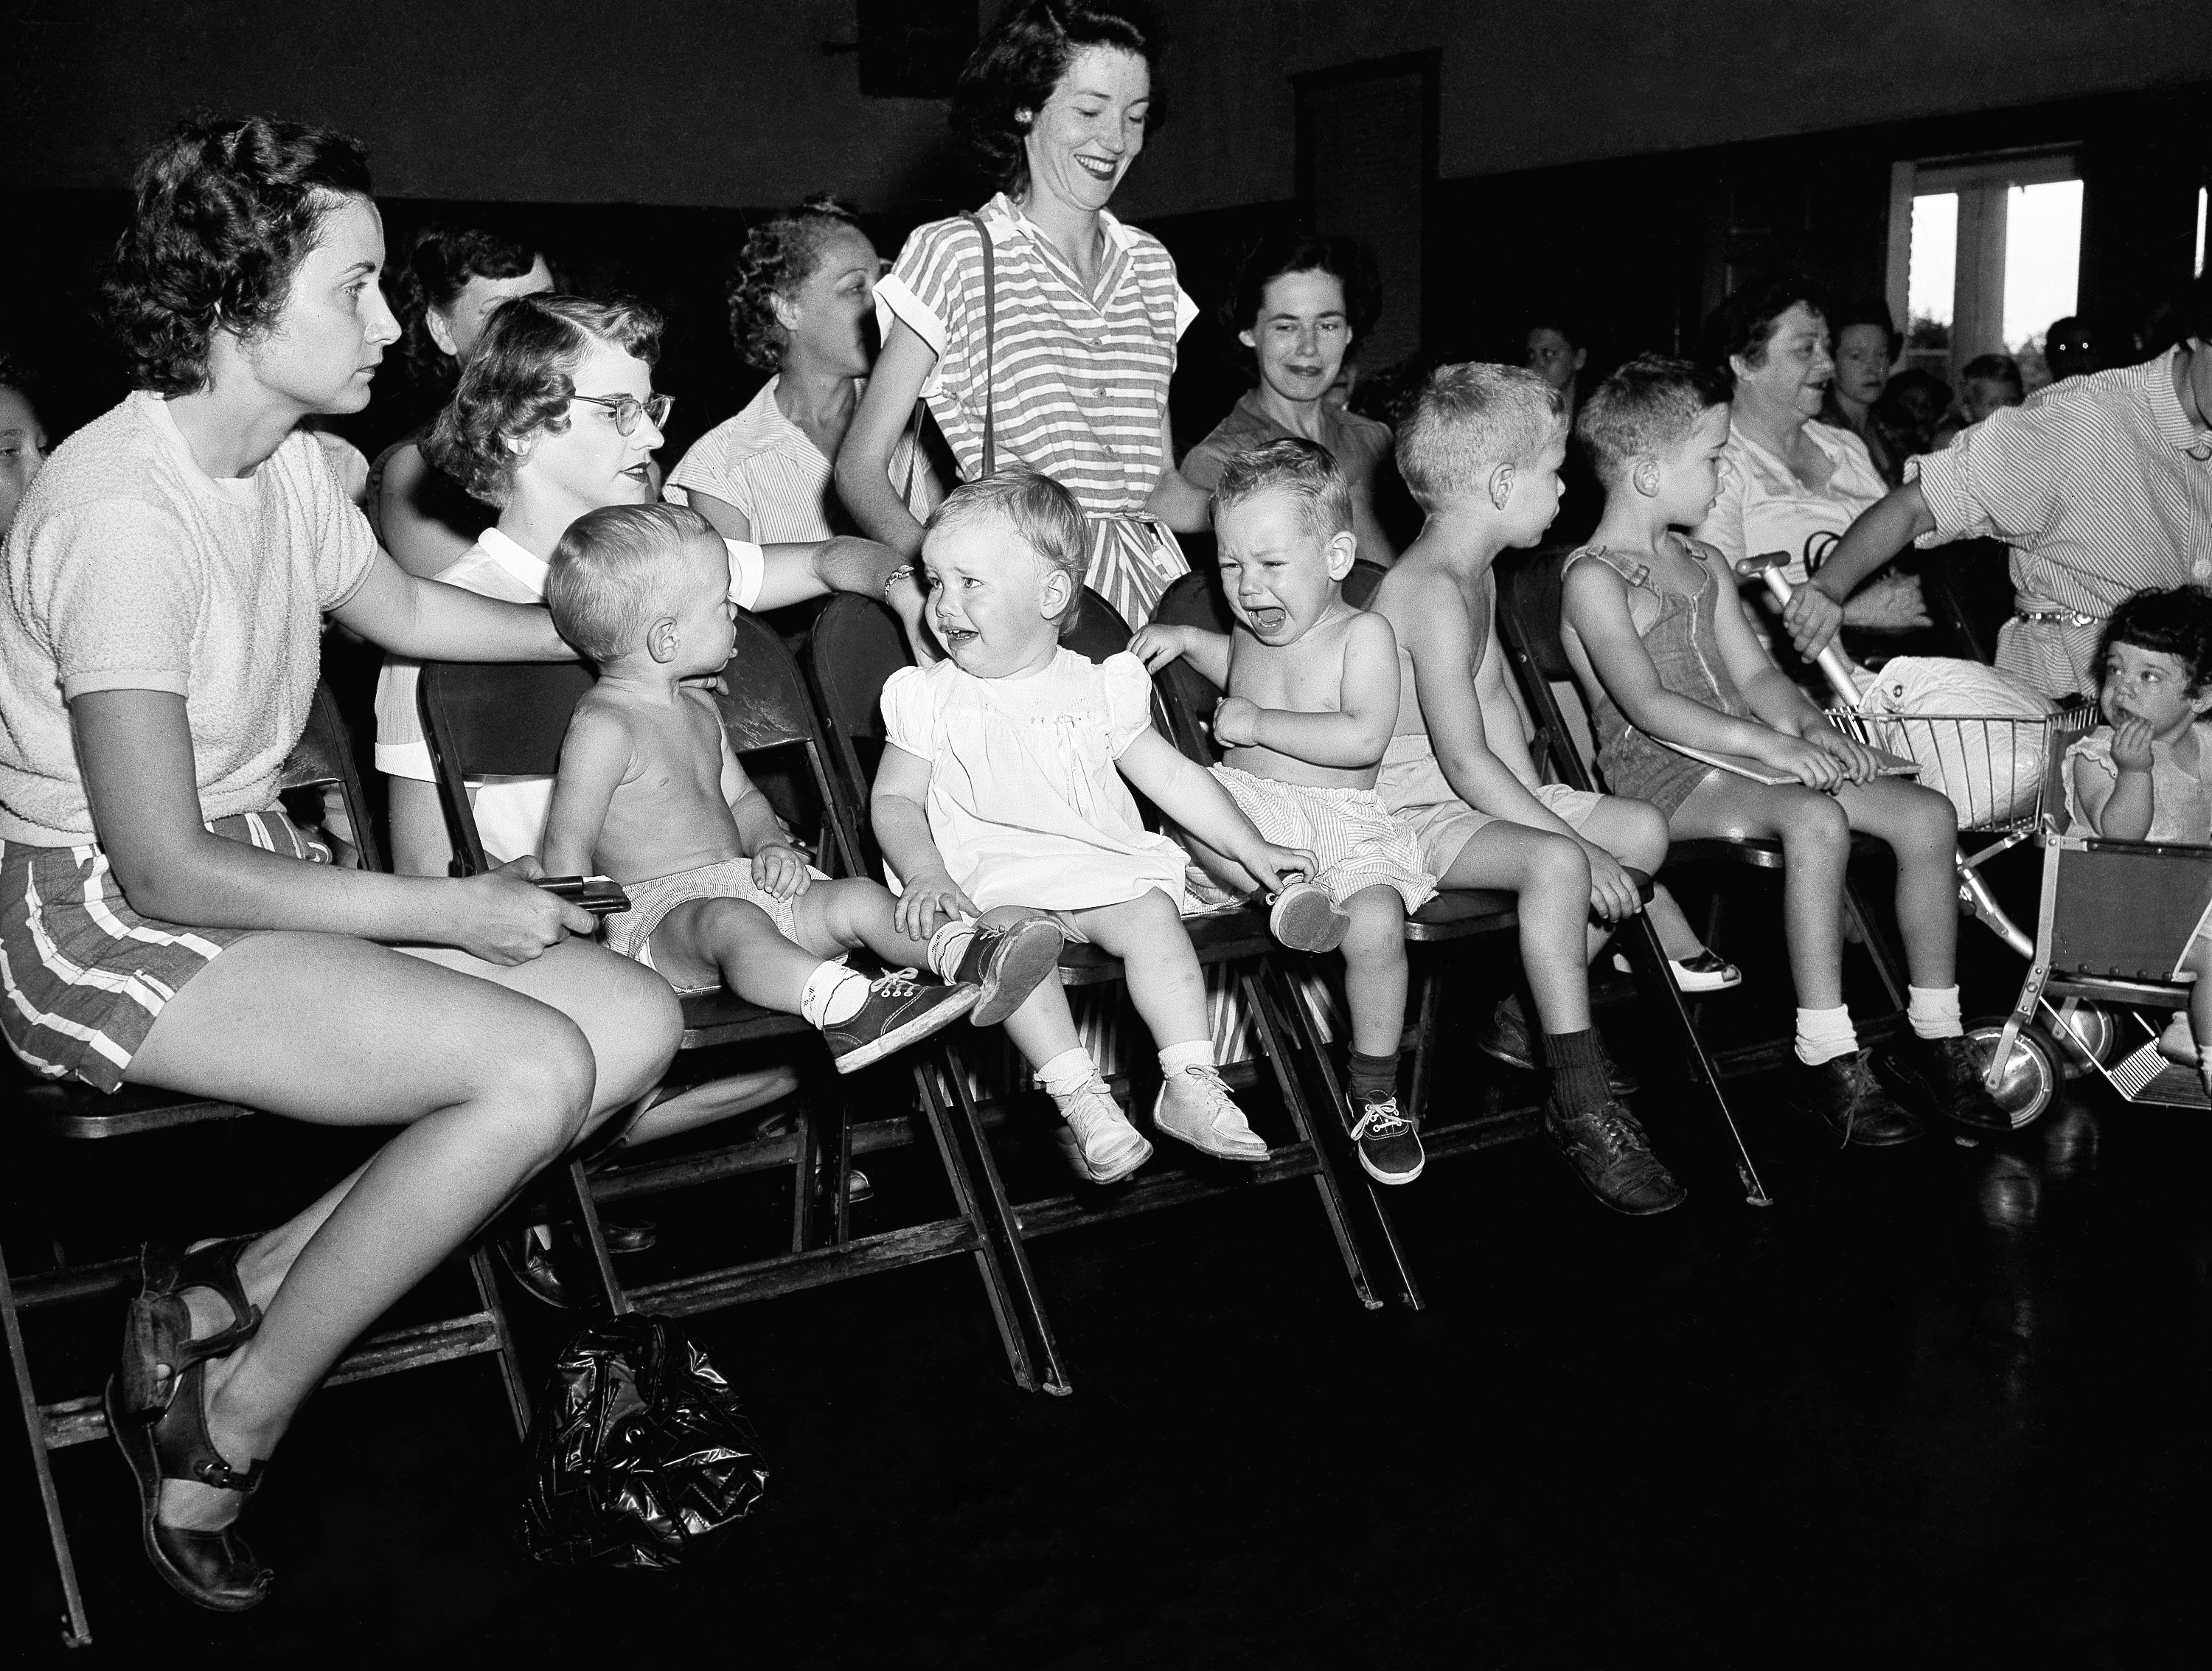 Three toddlers awaiting their turn to be inoculated with gamma globulin, blood fraction, in a mass experiment to prevent paralysis from polio, don't seem to be happy about it, July 2, 1952 in Houston.